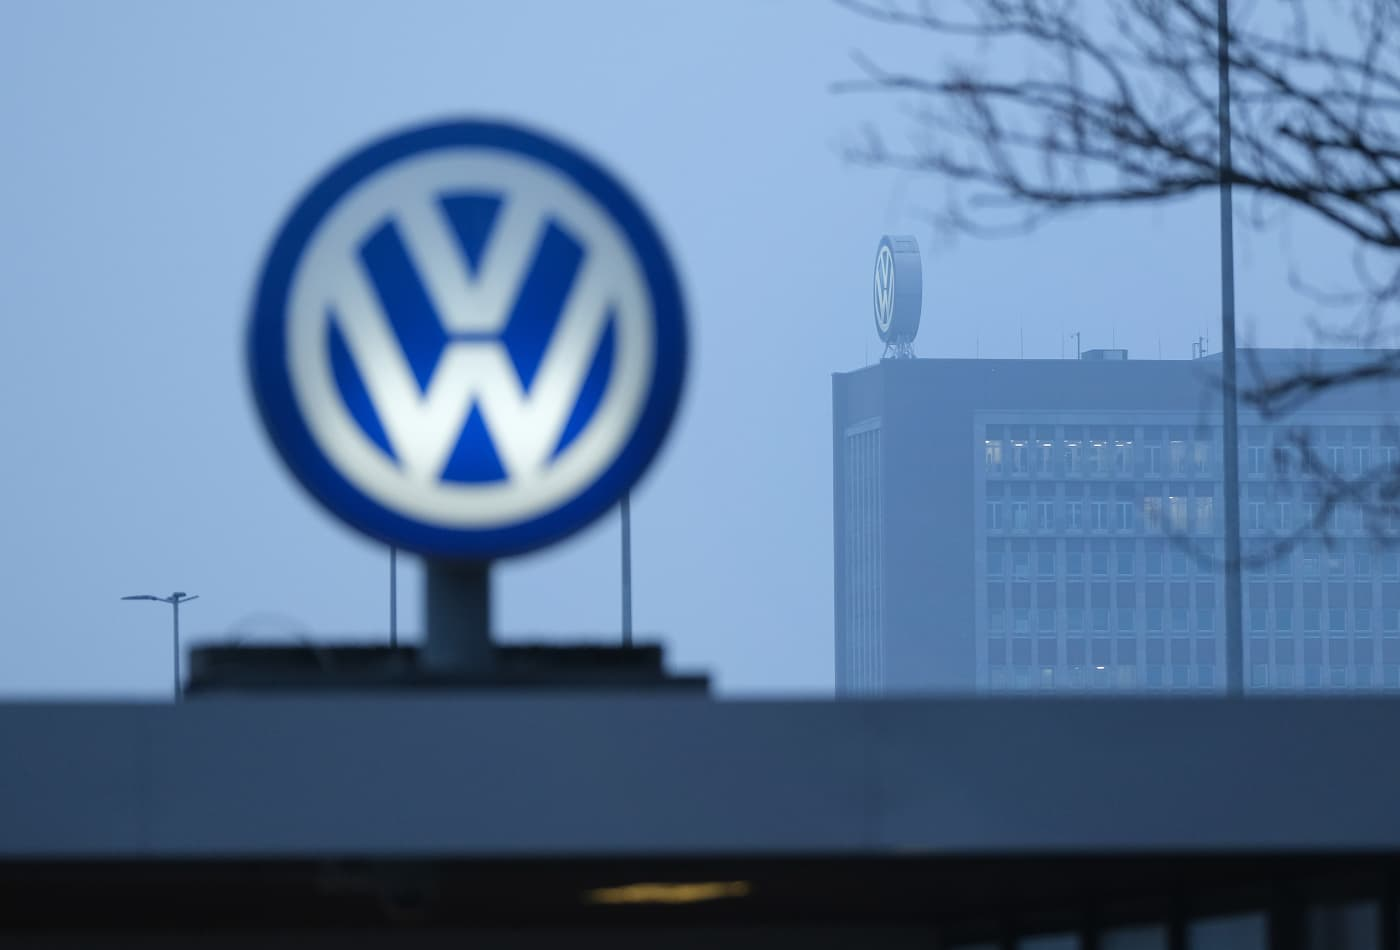 Volkswagen sets up autonomous driving subsidiary, plans Silicon Valley site next year